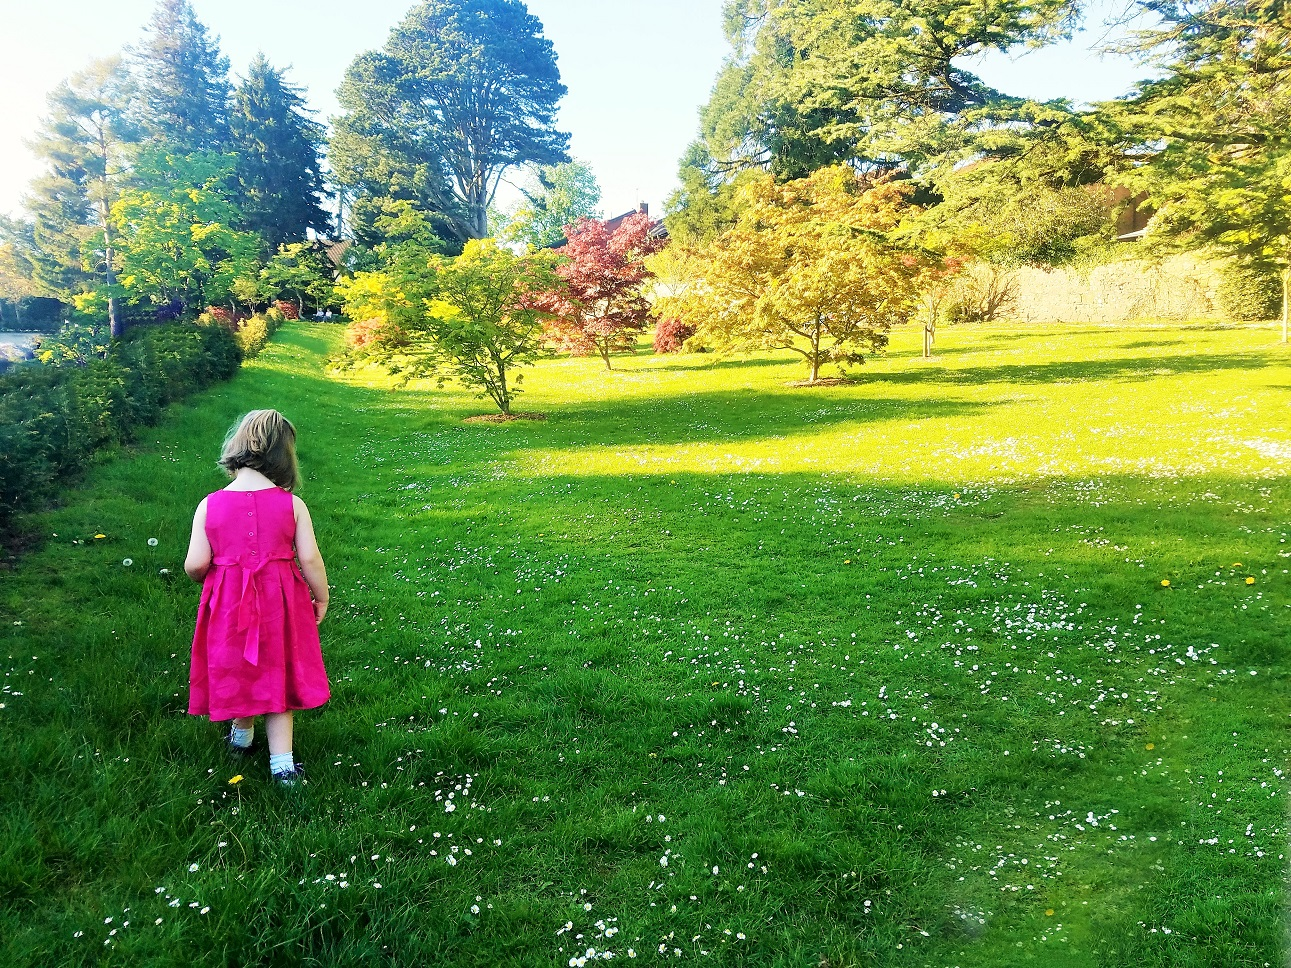 Empathy for your child is important - child wearing pink dress walking through field